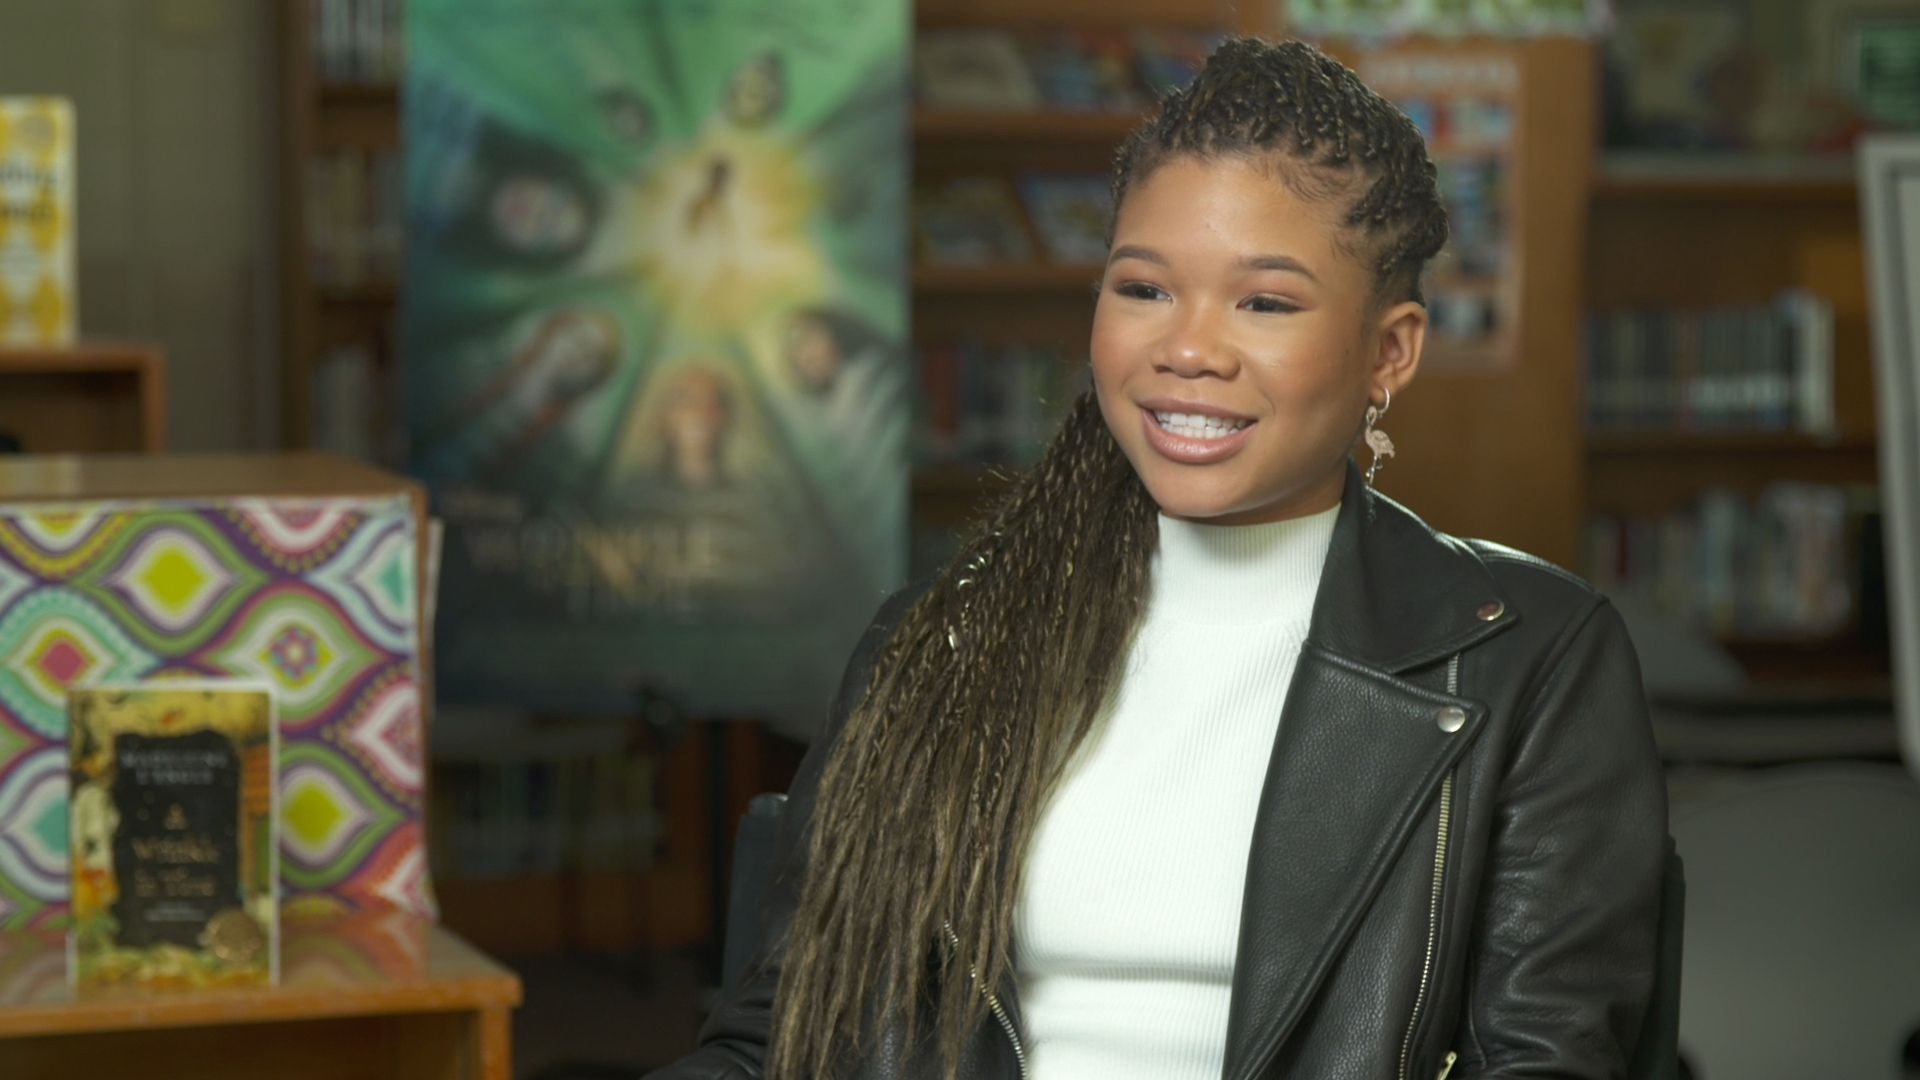 a wrinkle in time storm reid interview - 'A Wrinkle in Time': Storm Reid Gives Her Advice to Aspiring Young Actors